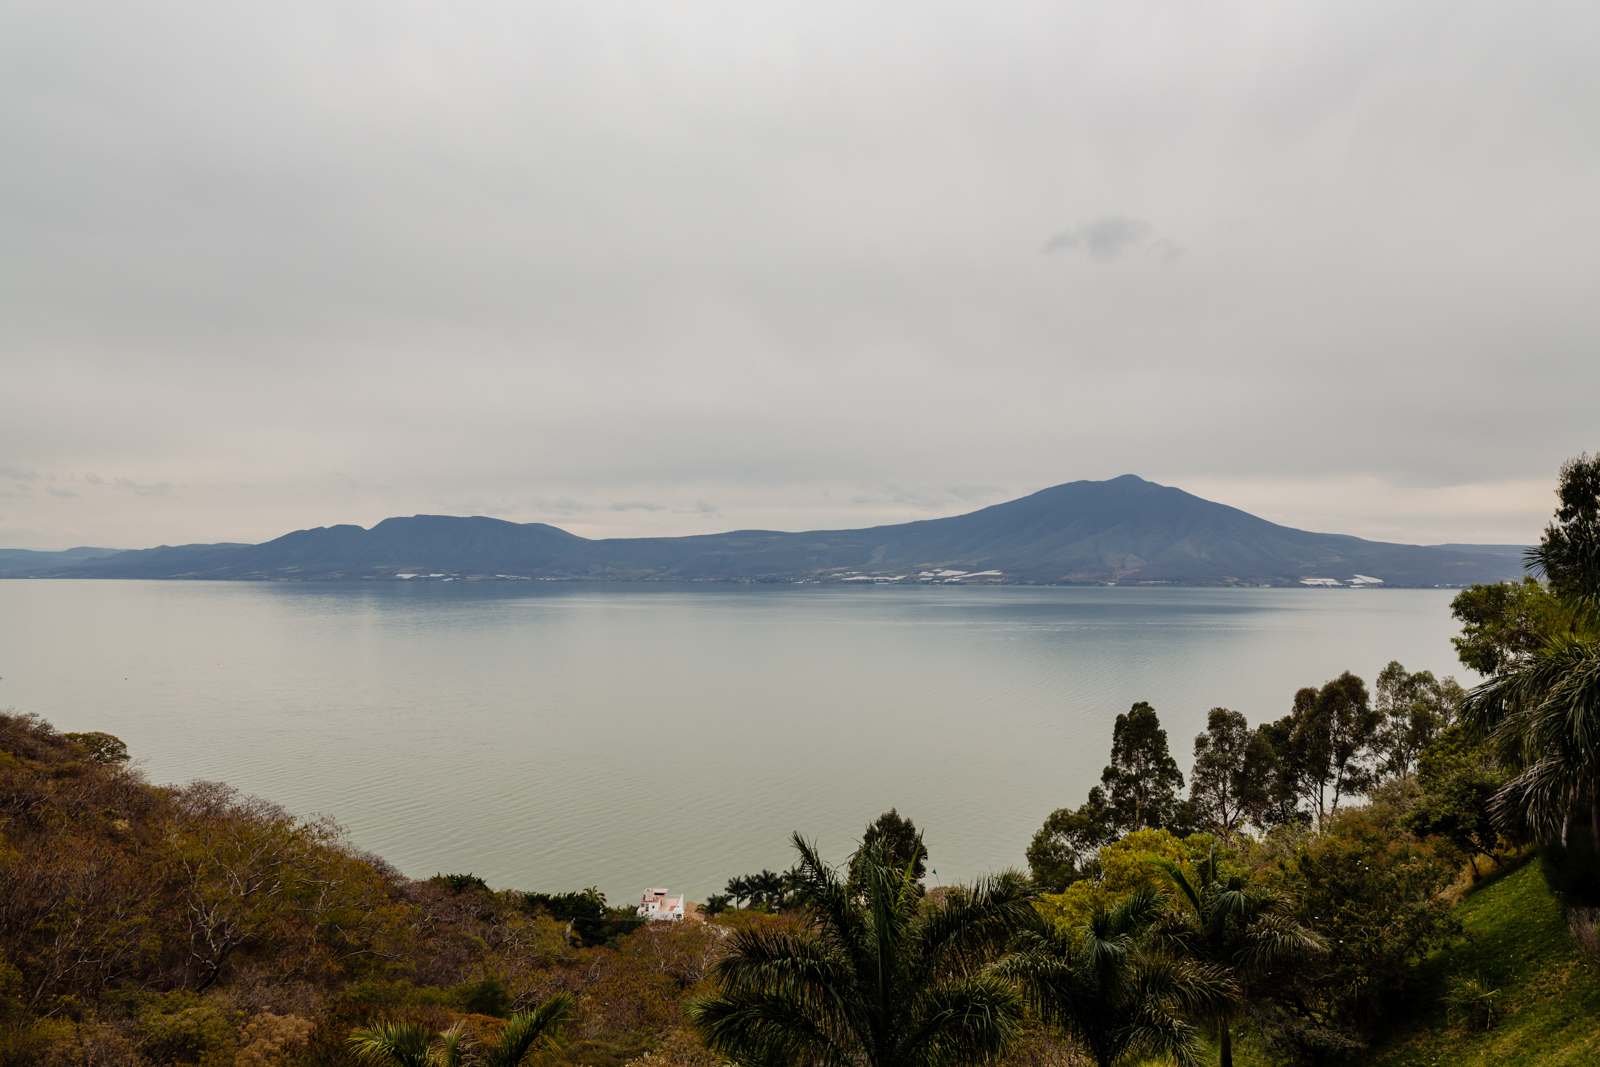 lake Chapala  on the mountain, with view on a cloudy day